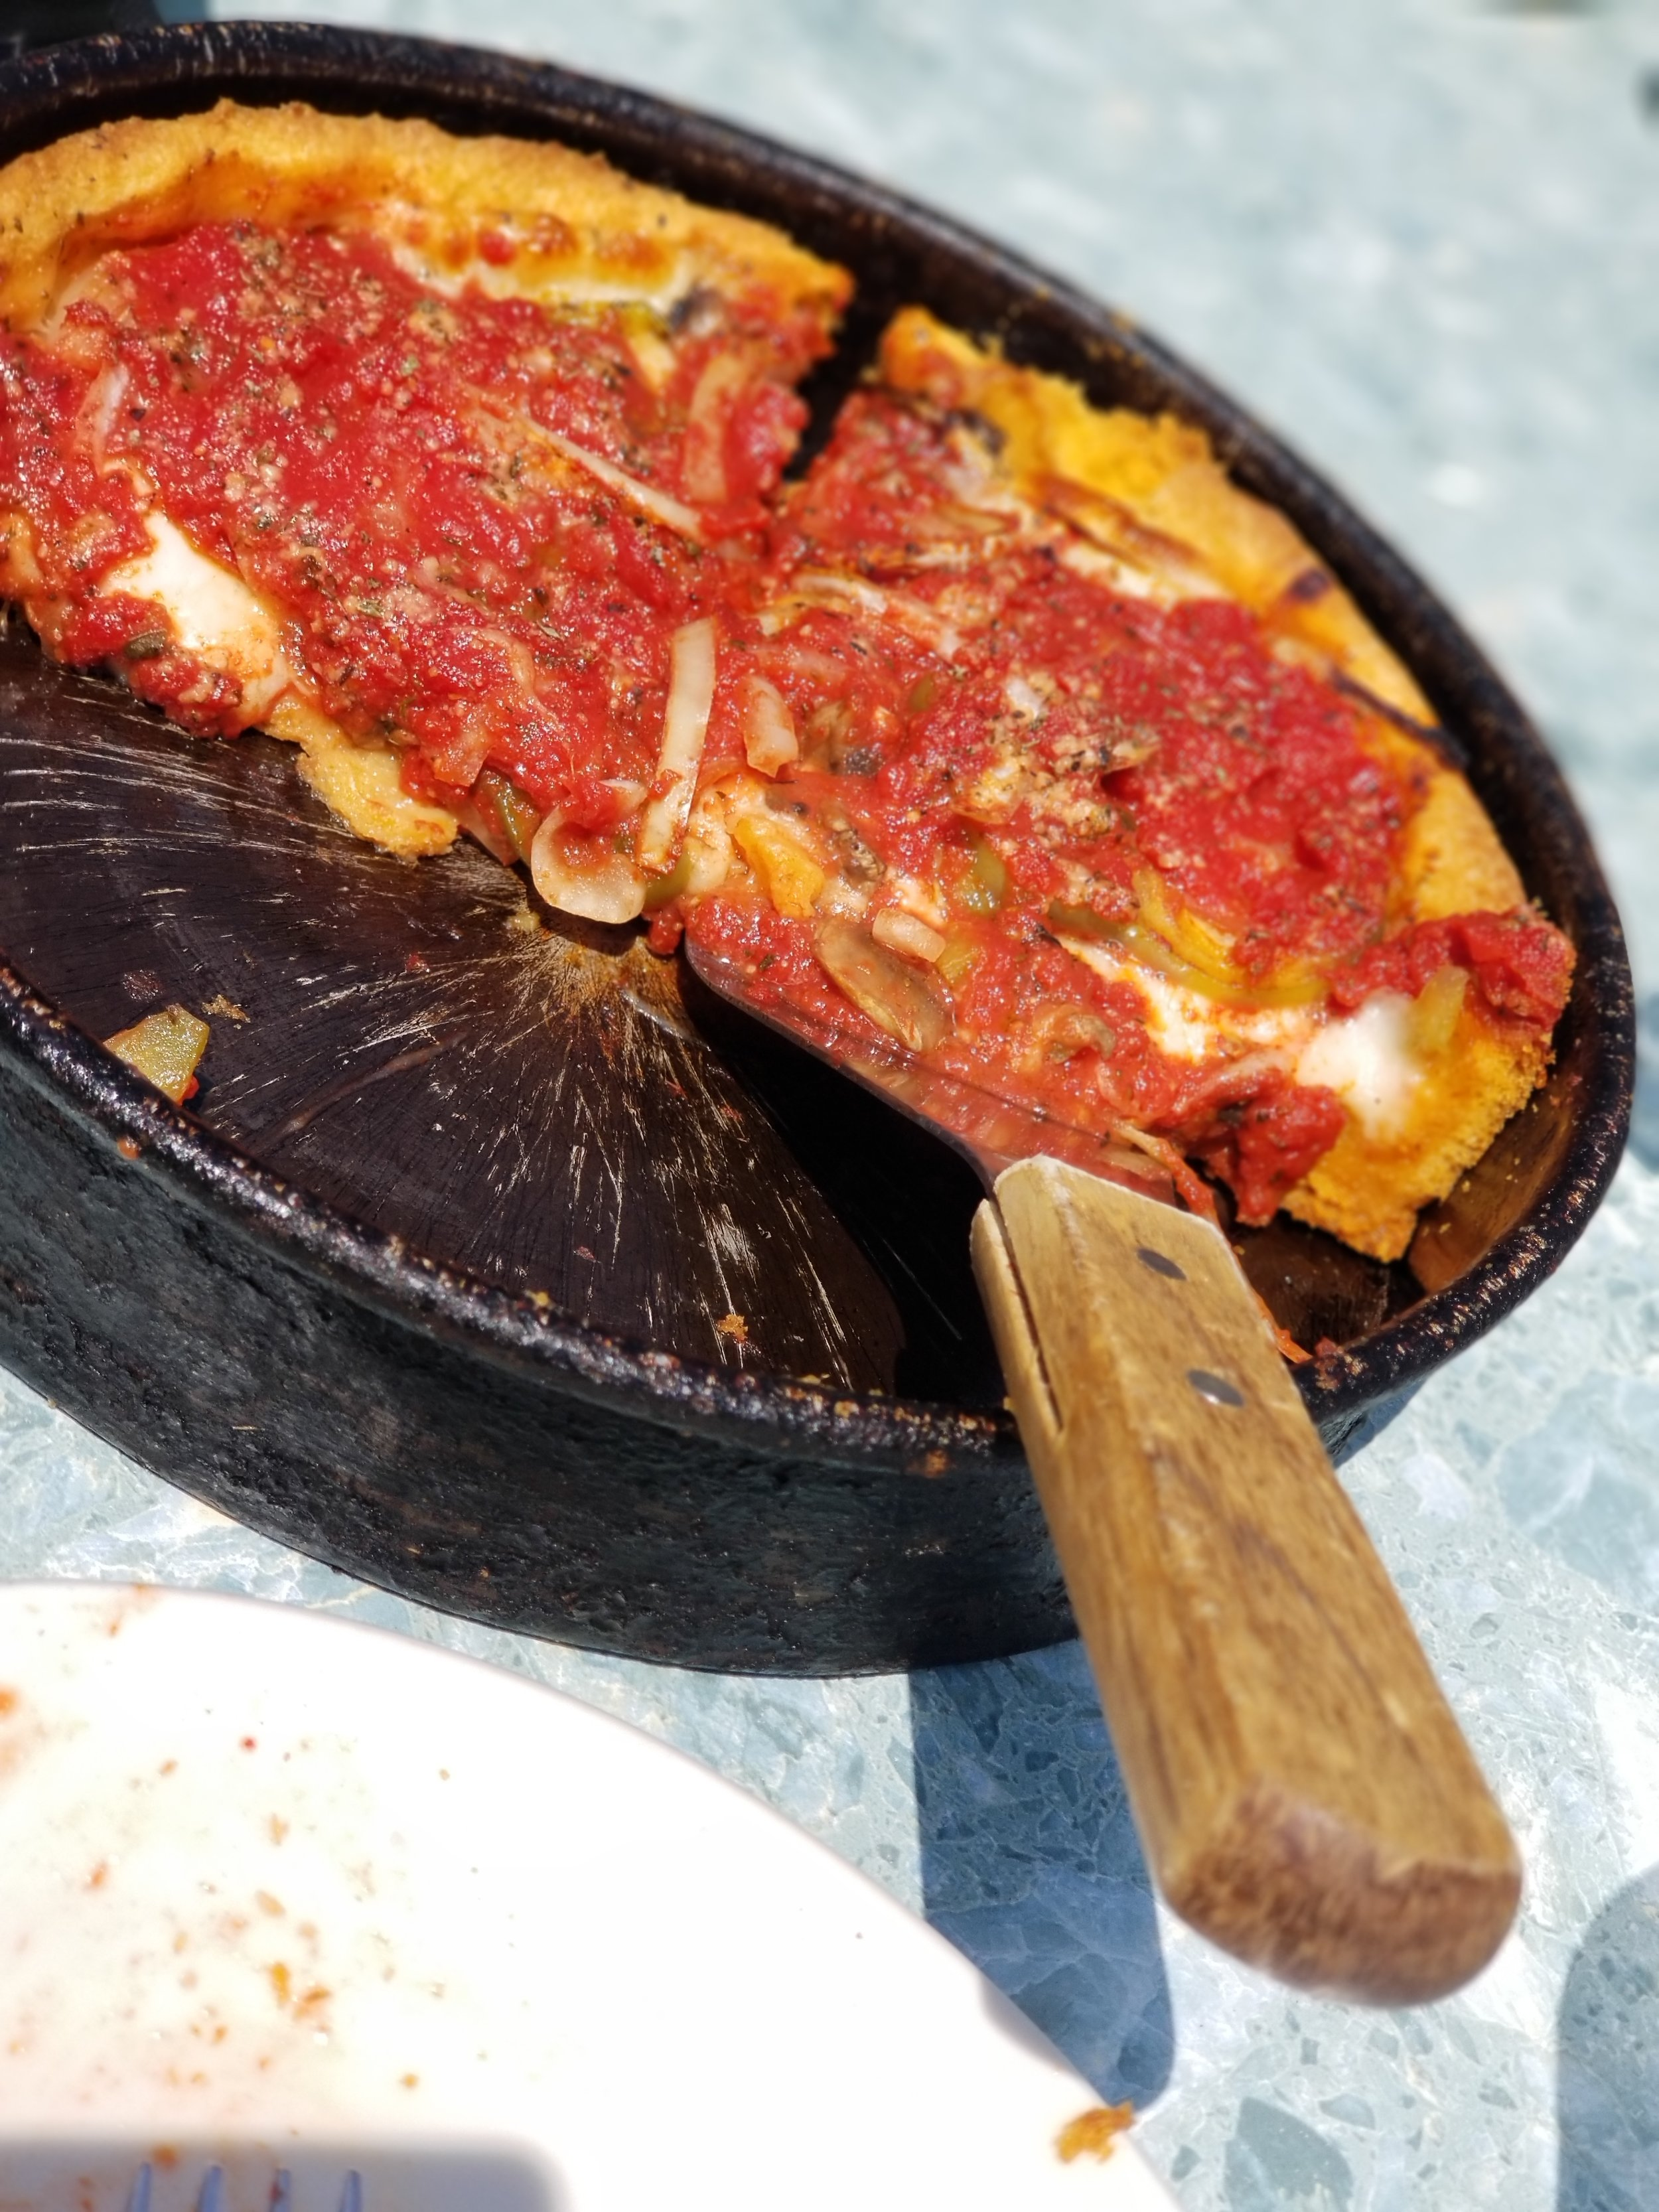 I was told you couldn't go to Chicago and not try the deep dish casserole ( I mean pizza) I was highly disappointed when we went to Gino's East.  The pizza is cooked in a wood  fired oven which takes about 45 minutes to be done.  The tomato sauce was very watery and lacked flavor.  For the pizza to take 45 minutes to cook, it came out cold..  Gino's was definitely my least favorite restaurant the entire trip